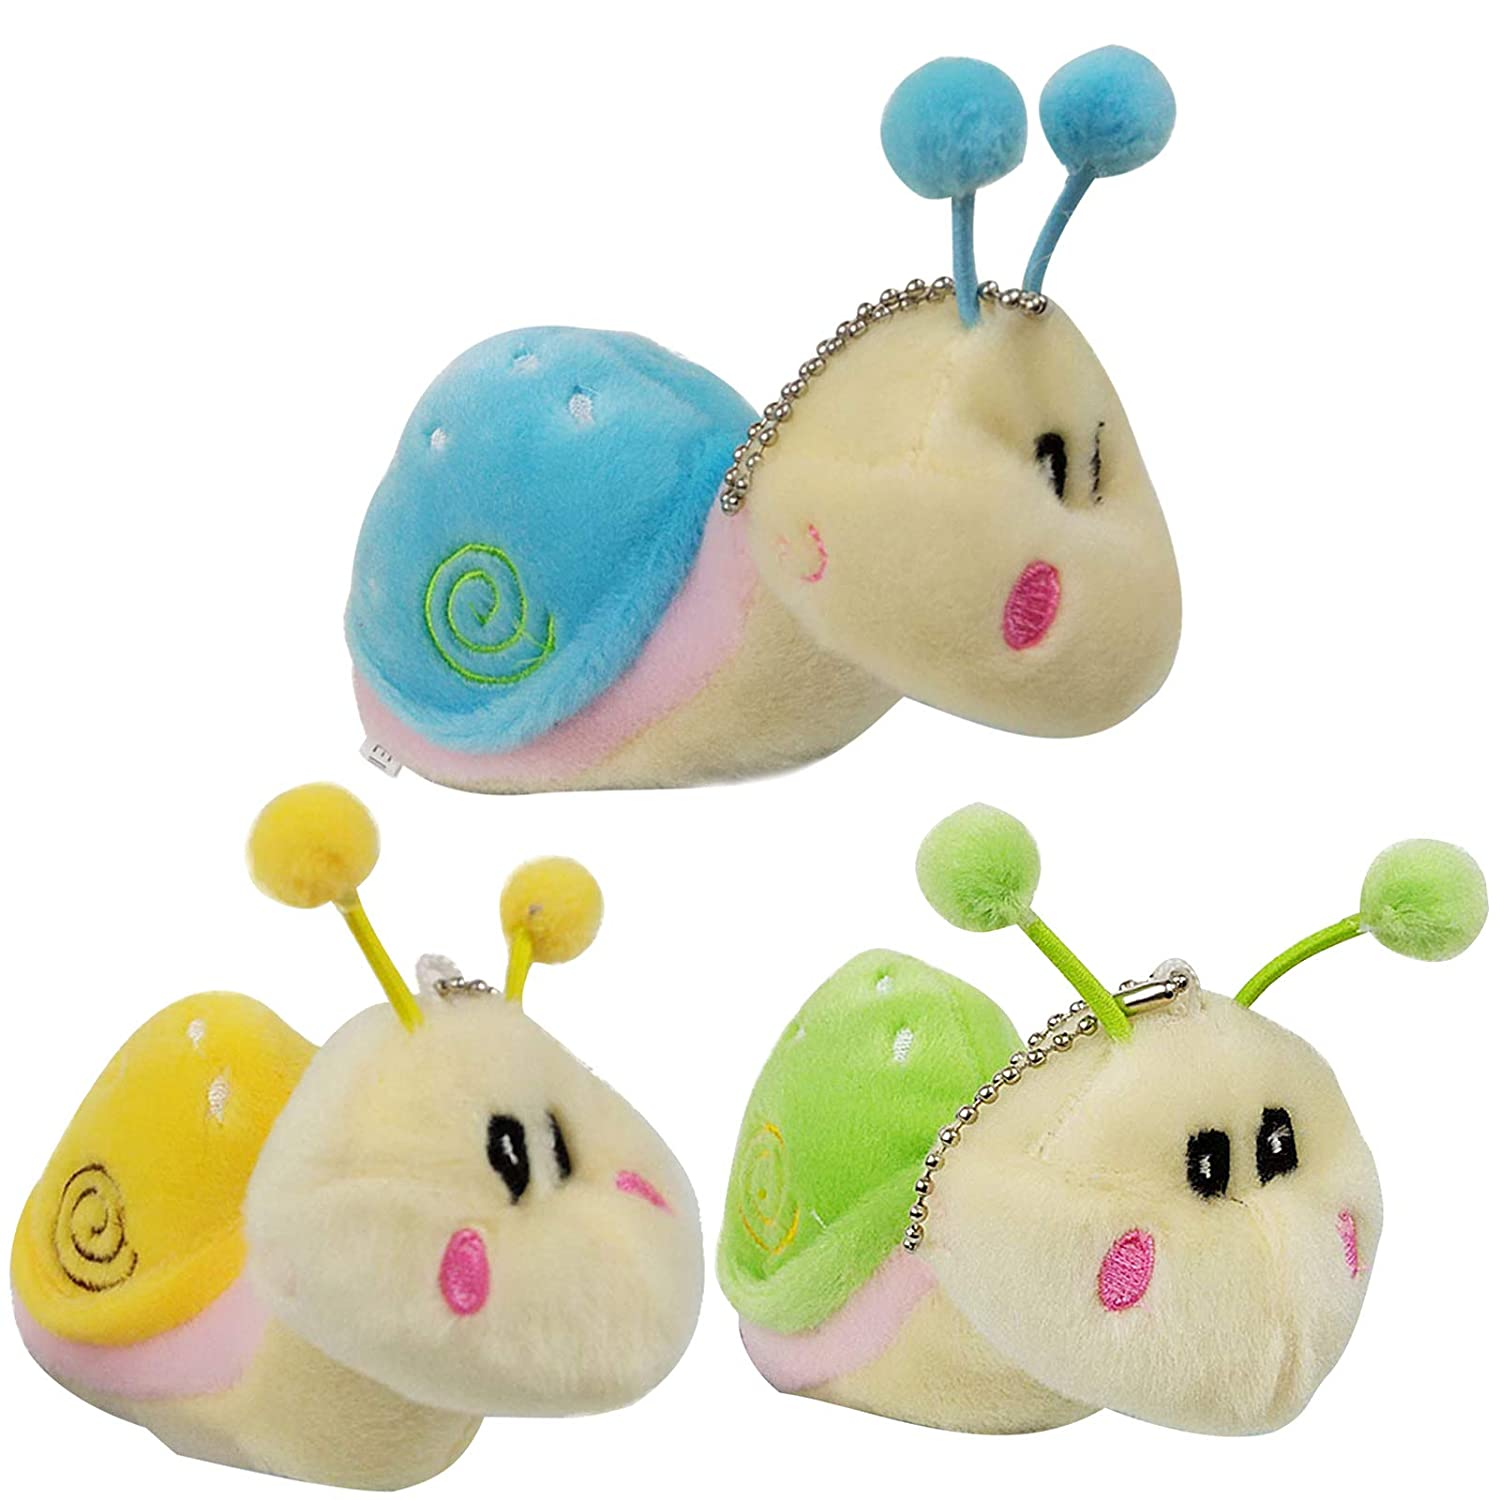 3 pcs Stuffed Animals Snail Plush Toys, Cute Fake Mini Beanie Doll, Little Stuff Animal Keychains, Valentines Christmas Gifts for Kids Boys Girls